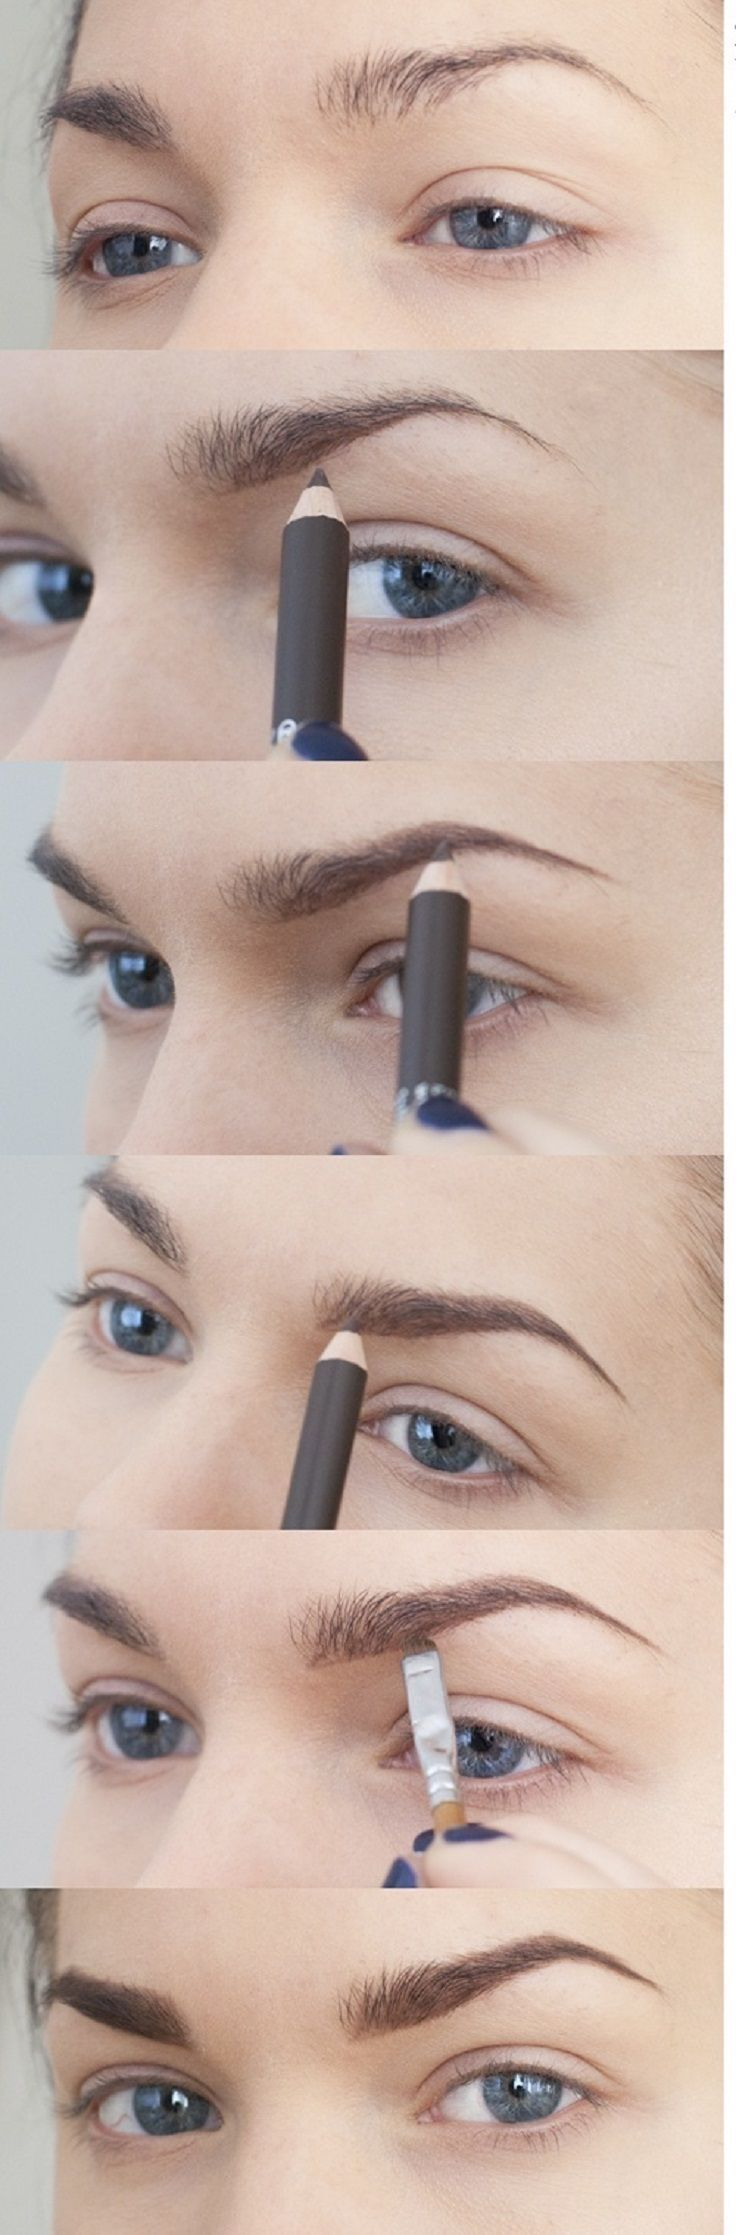 how to make a perfect eye brow